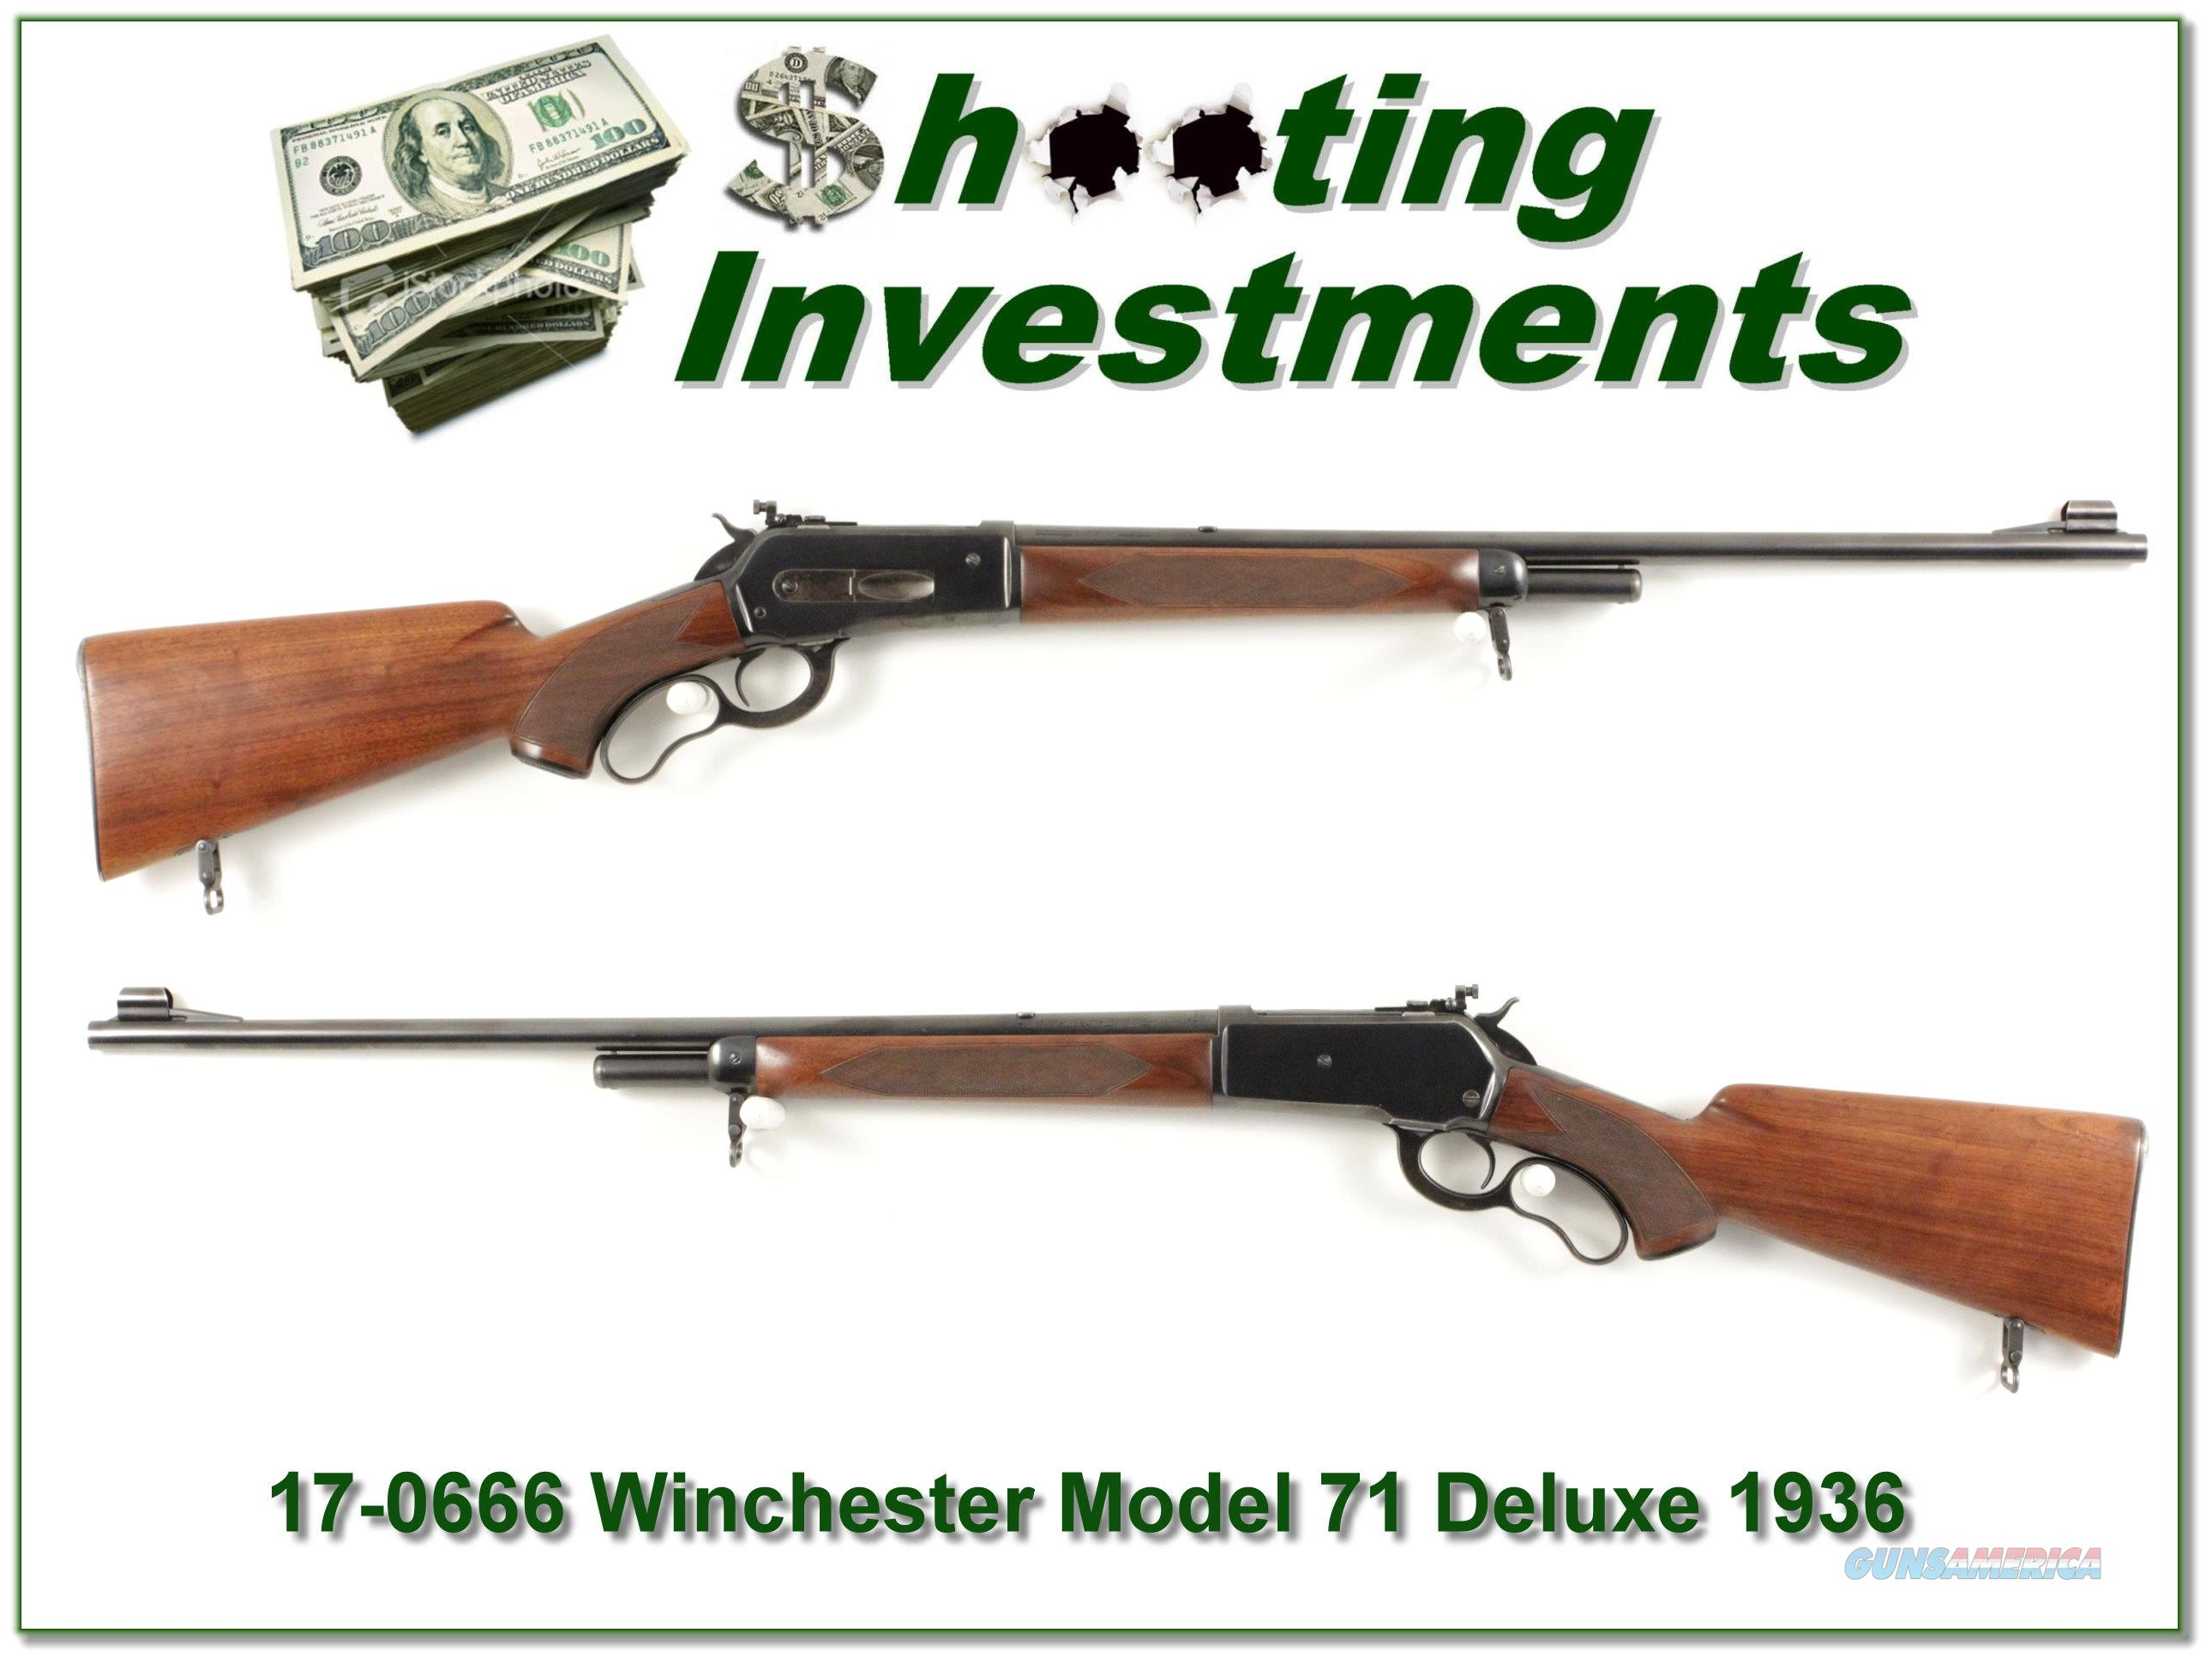 First Year 1936 Winchester Model 71 Deluxe 348 Win  Guns > Rifles > Winchester Rifles - Modern Lever > Other Lever > Pre-64